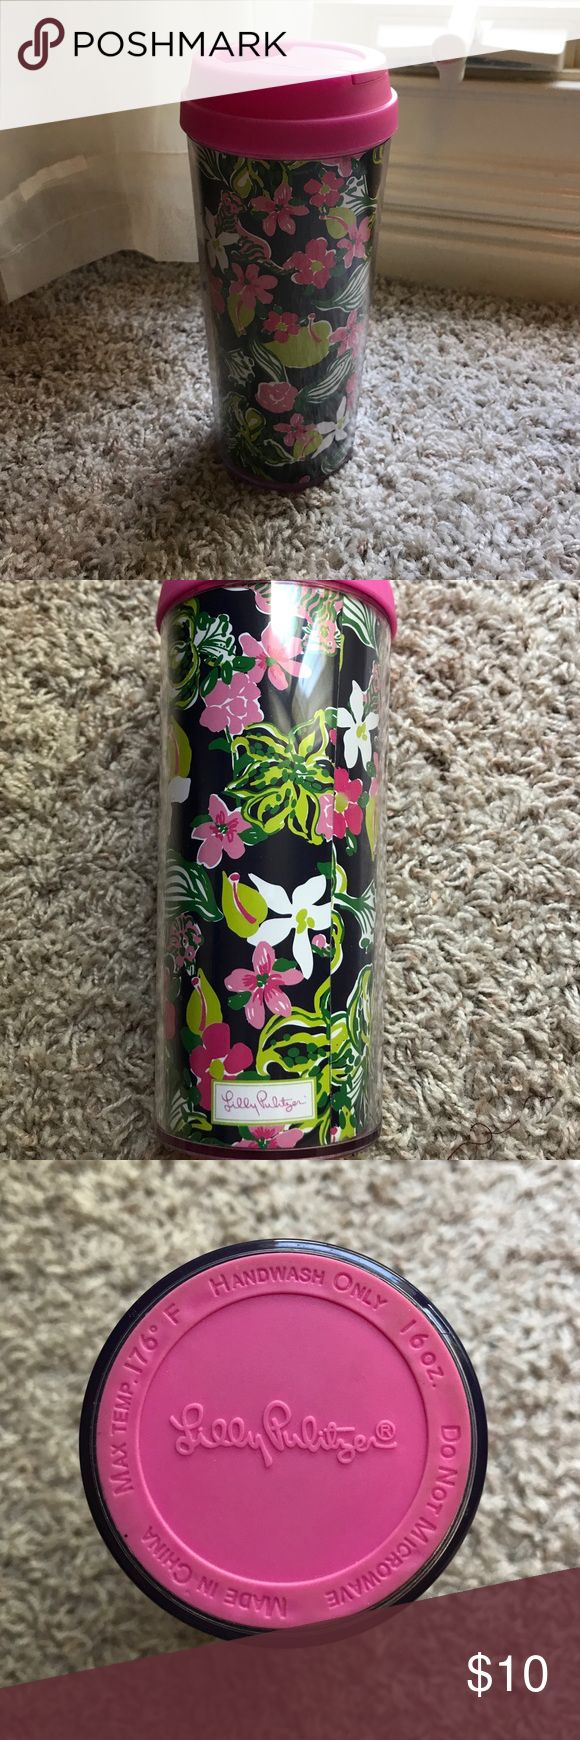 Lilly Pulitzer Travel Mug Lilly Pulitzer Travel Mug for sale!! Good condition! This was a gift and I just never used it. Material is plastic. Super cute patter with navy, hot pink, and green! 🤗🤗 Lilly Pulitzer Other